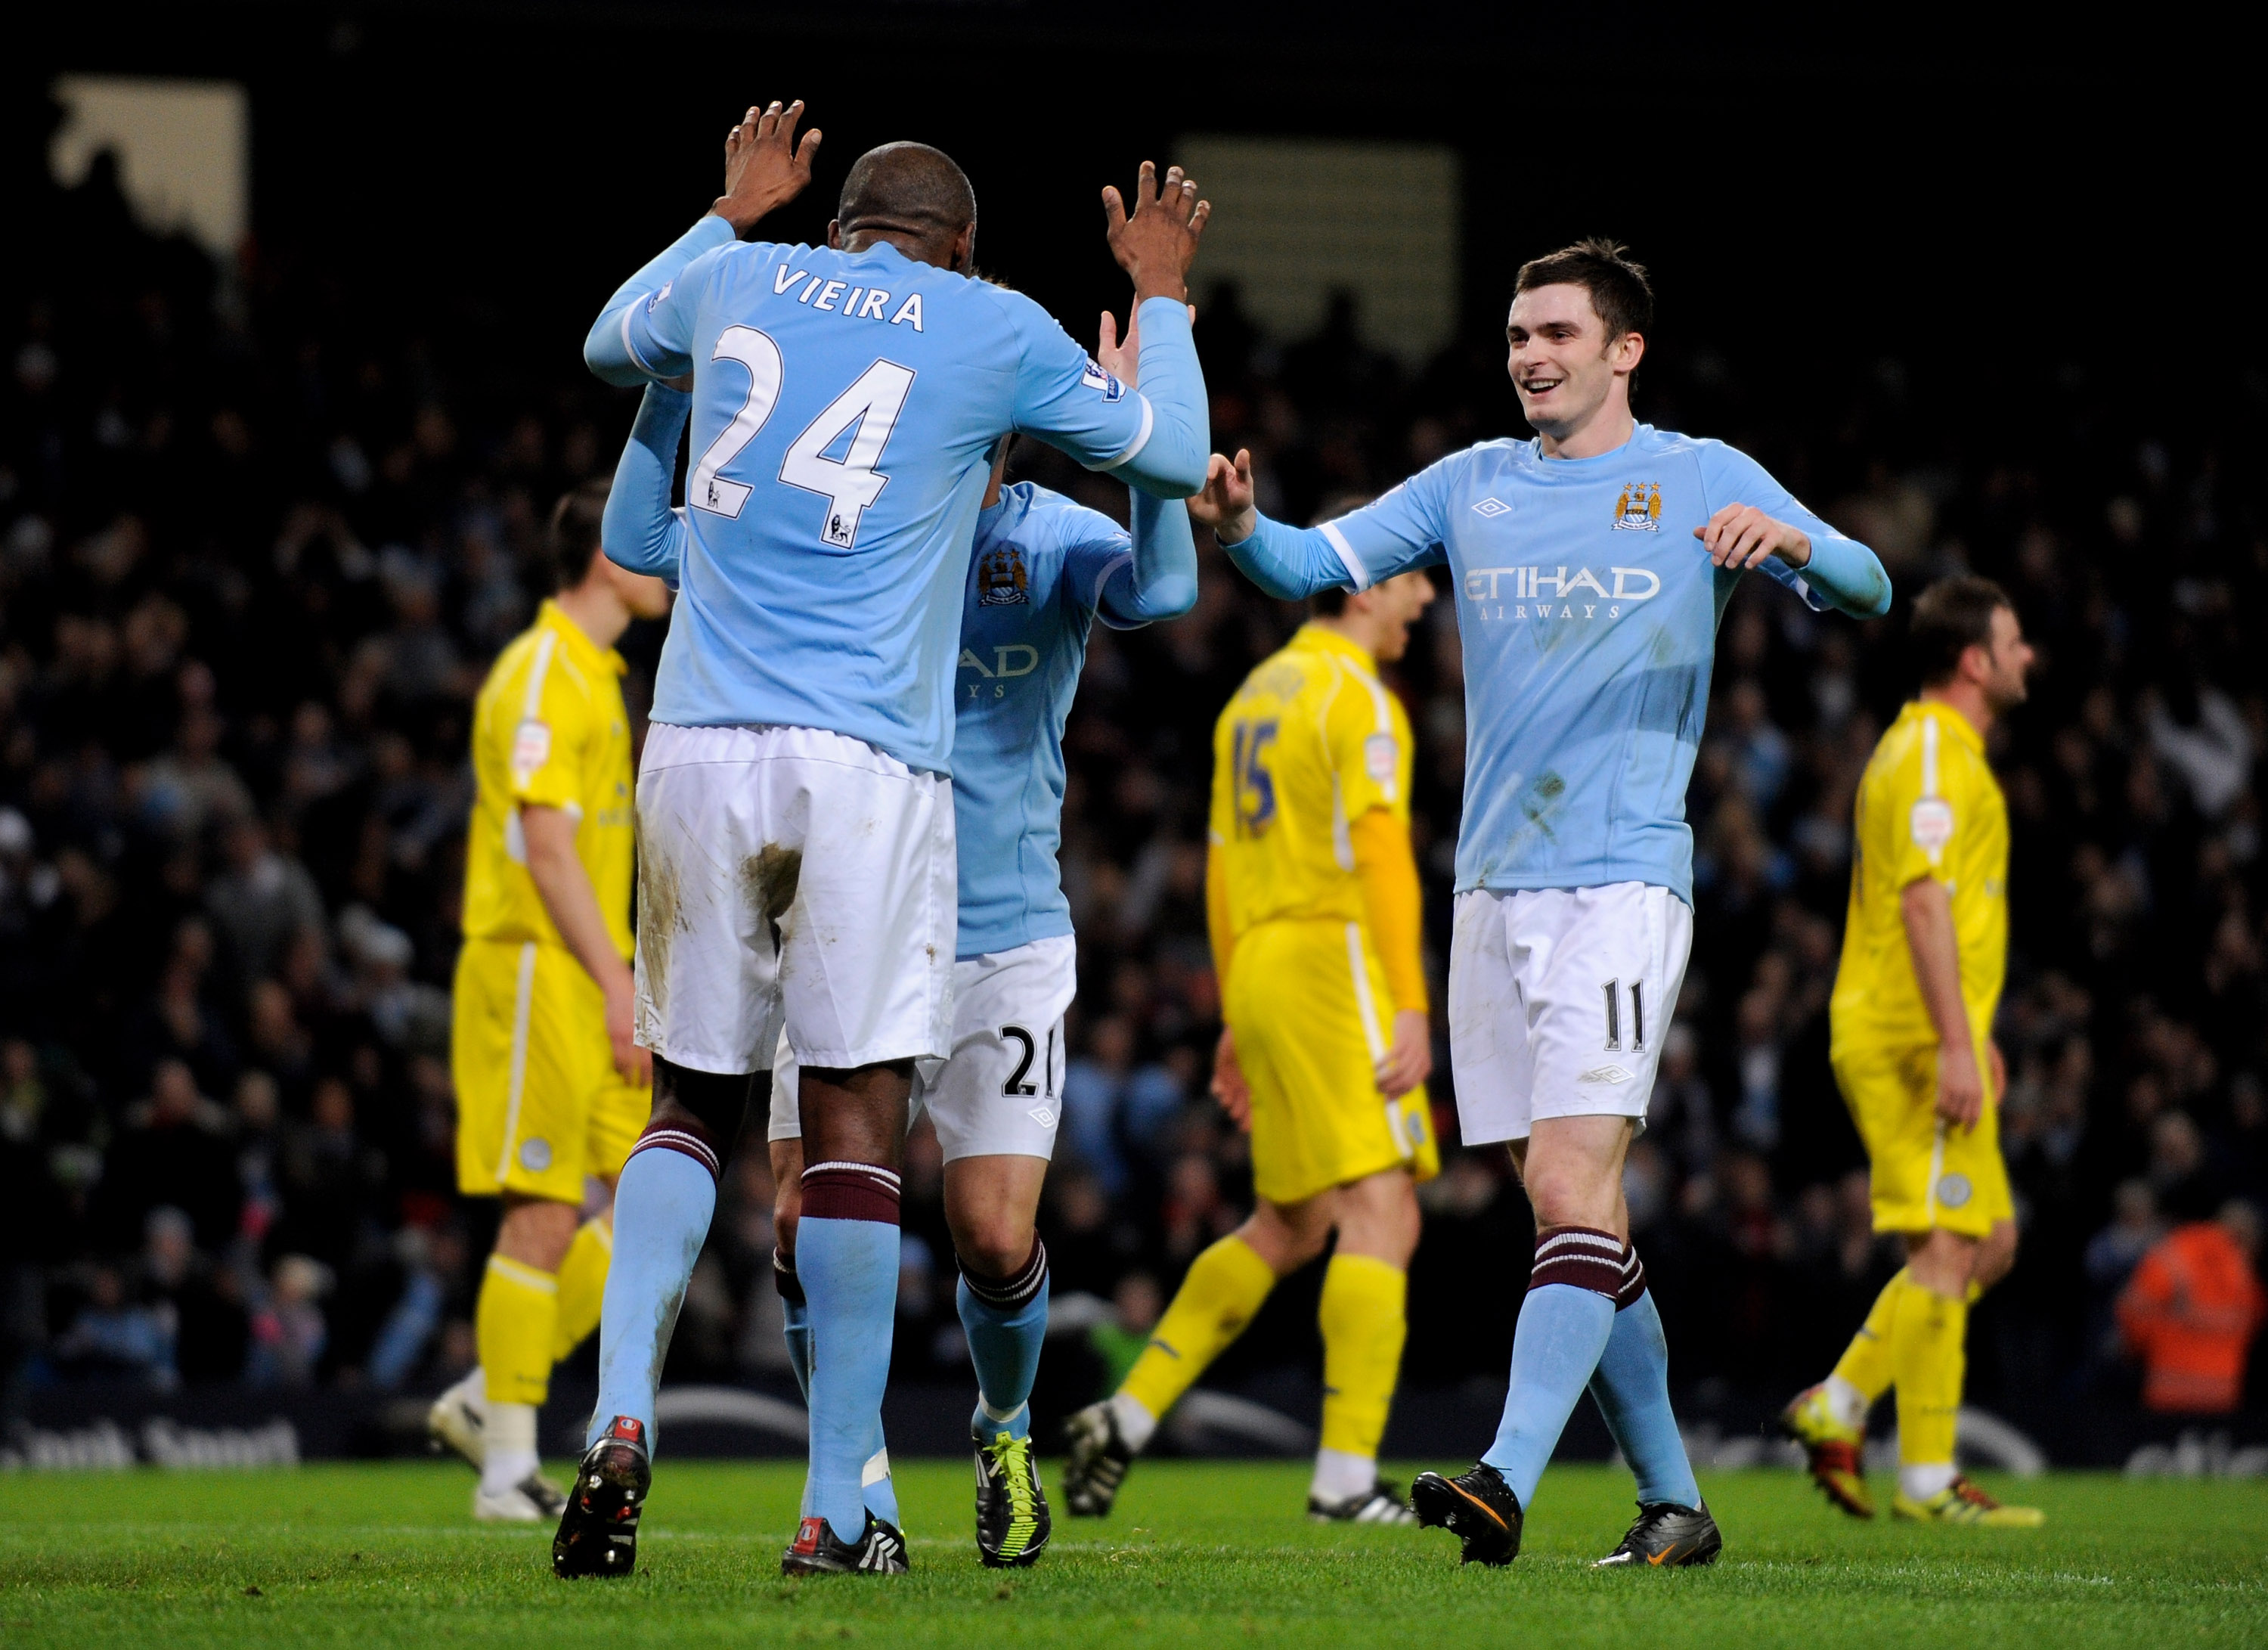 MANCHESTER, ENGLAND - JANUARY 18:  Patrick Viera of Manchester City celebrates scoring his team's second goal with his team mates during the FA Cup sponsored by E.On Third Round Replay match between Manchester City and Leicester City at the City of Manche